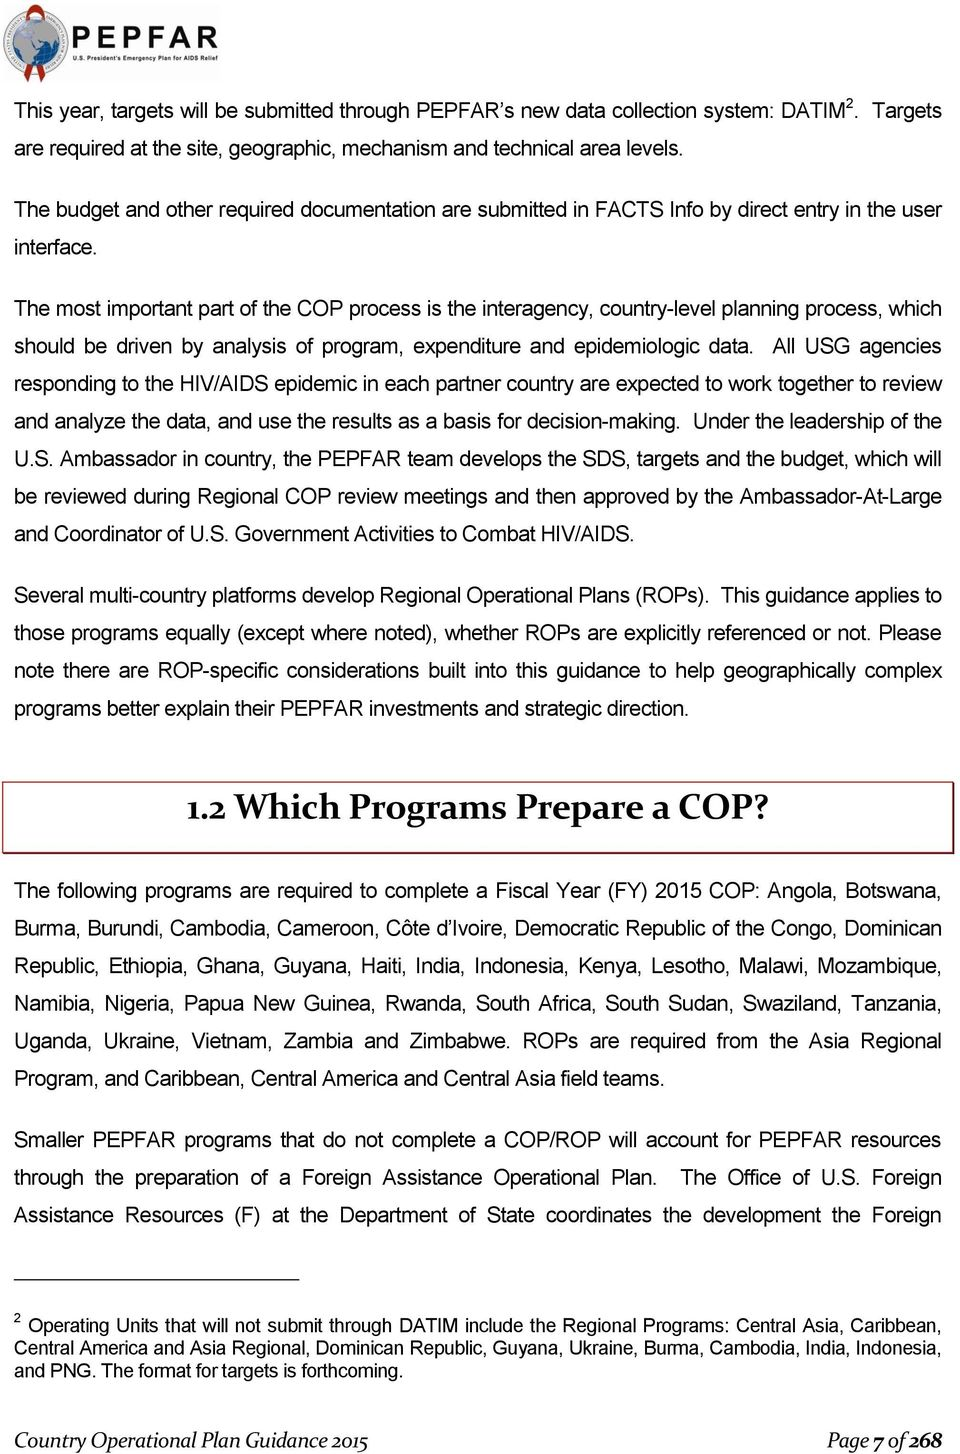 The most important part of the COP process is the interagency, country-level planning process, which should be driven by analysis of program, expenditure and epidemiologic data.